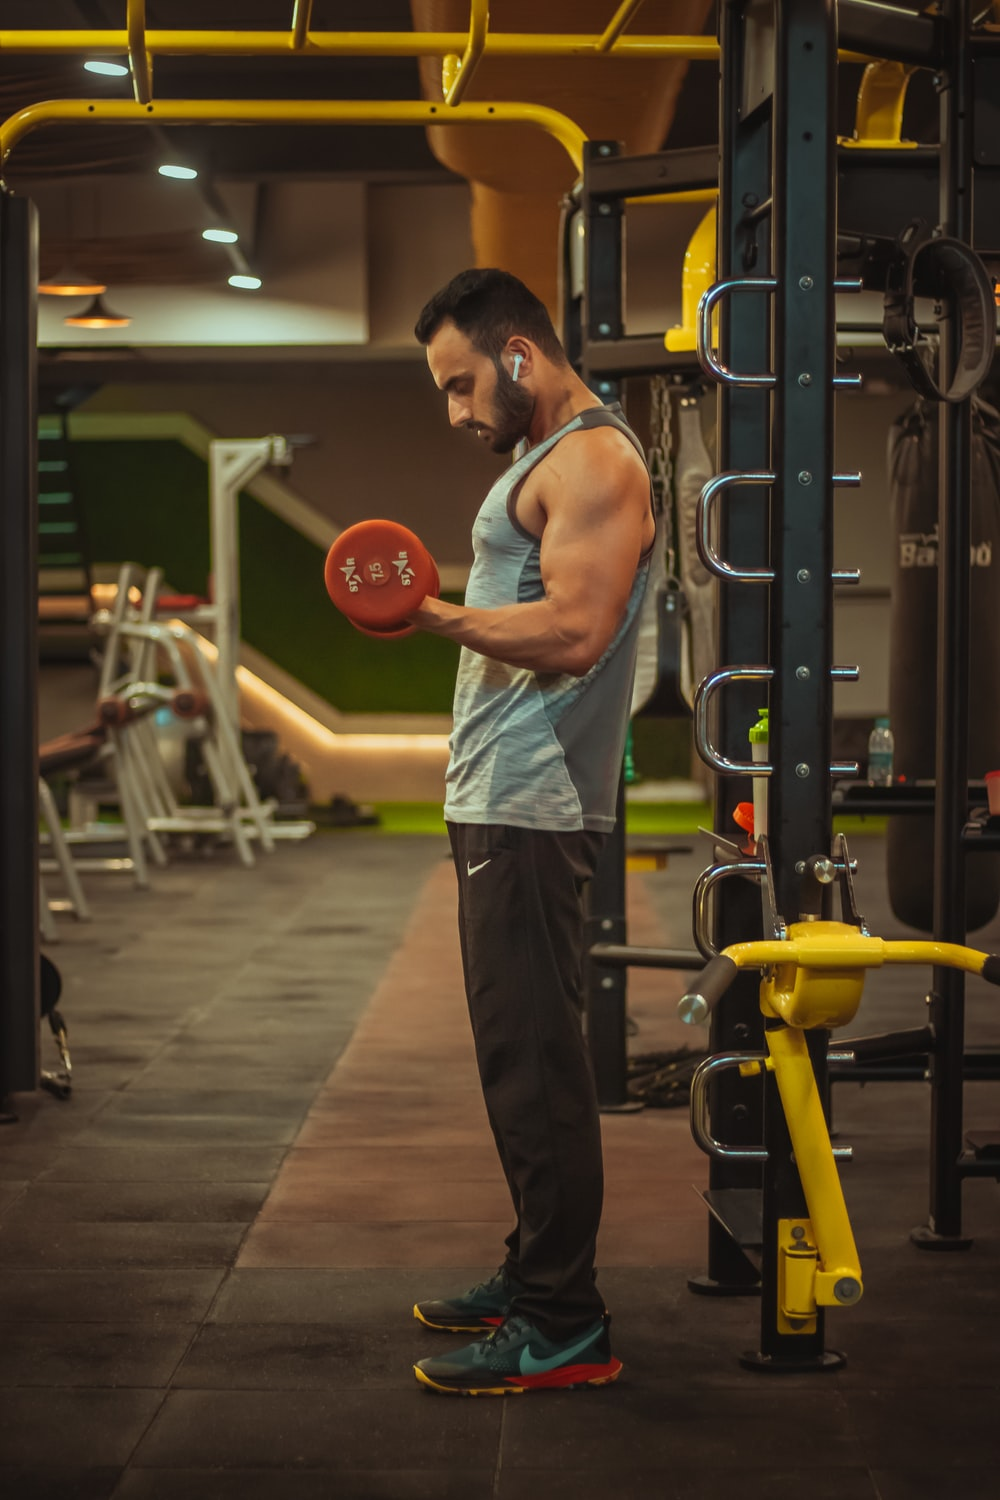 Gym Workout - 3 Tips For A Proper Fitness Routine